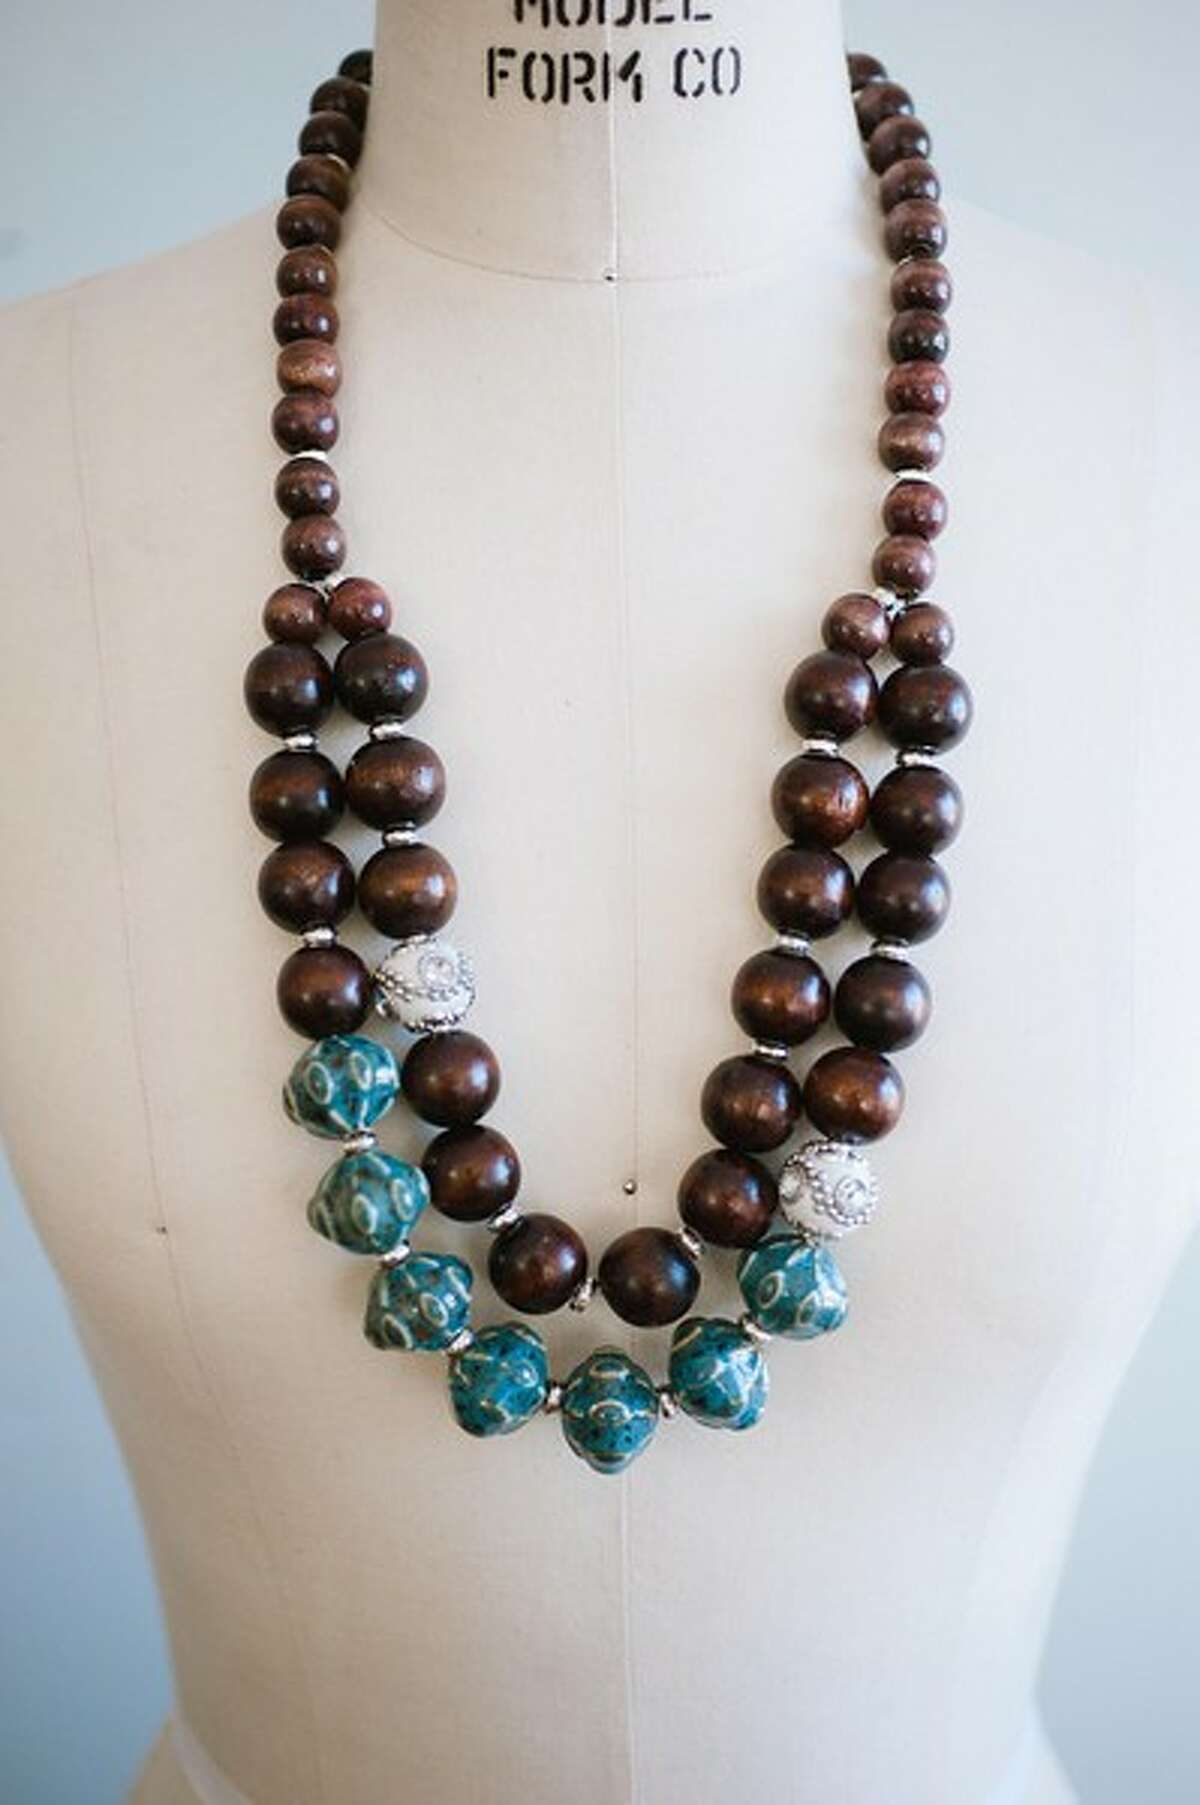 Just by adding a statement necklace, such as this Bali necklace, some chunky bracelets or a bright-colored belt can turn a drab outfit into a polished look.